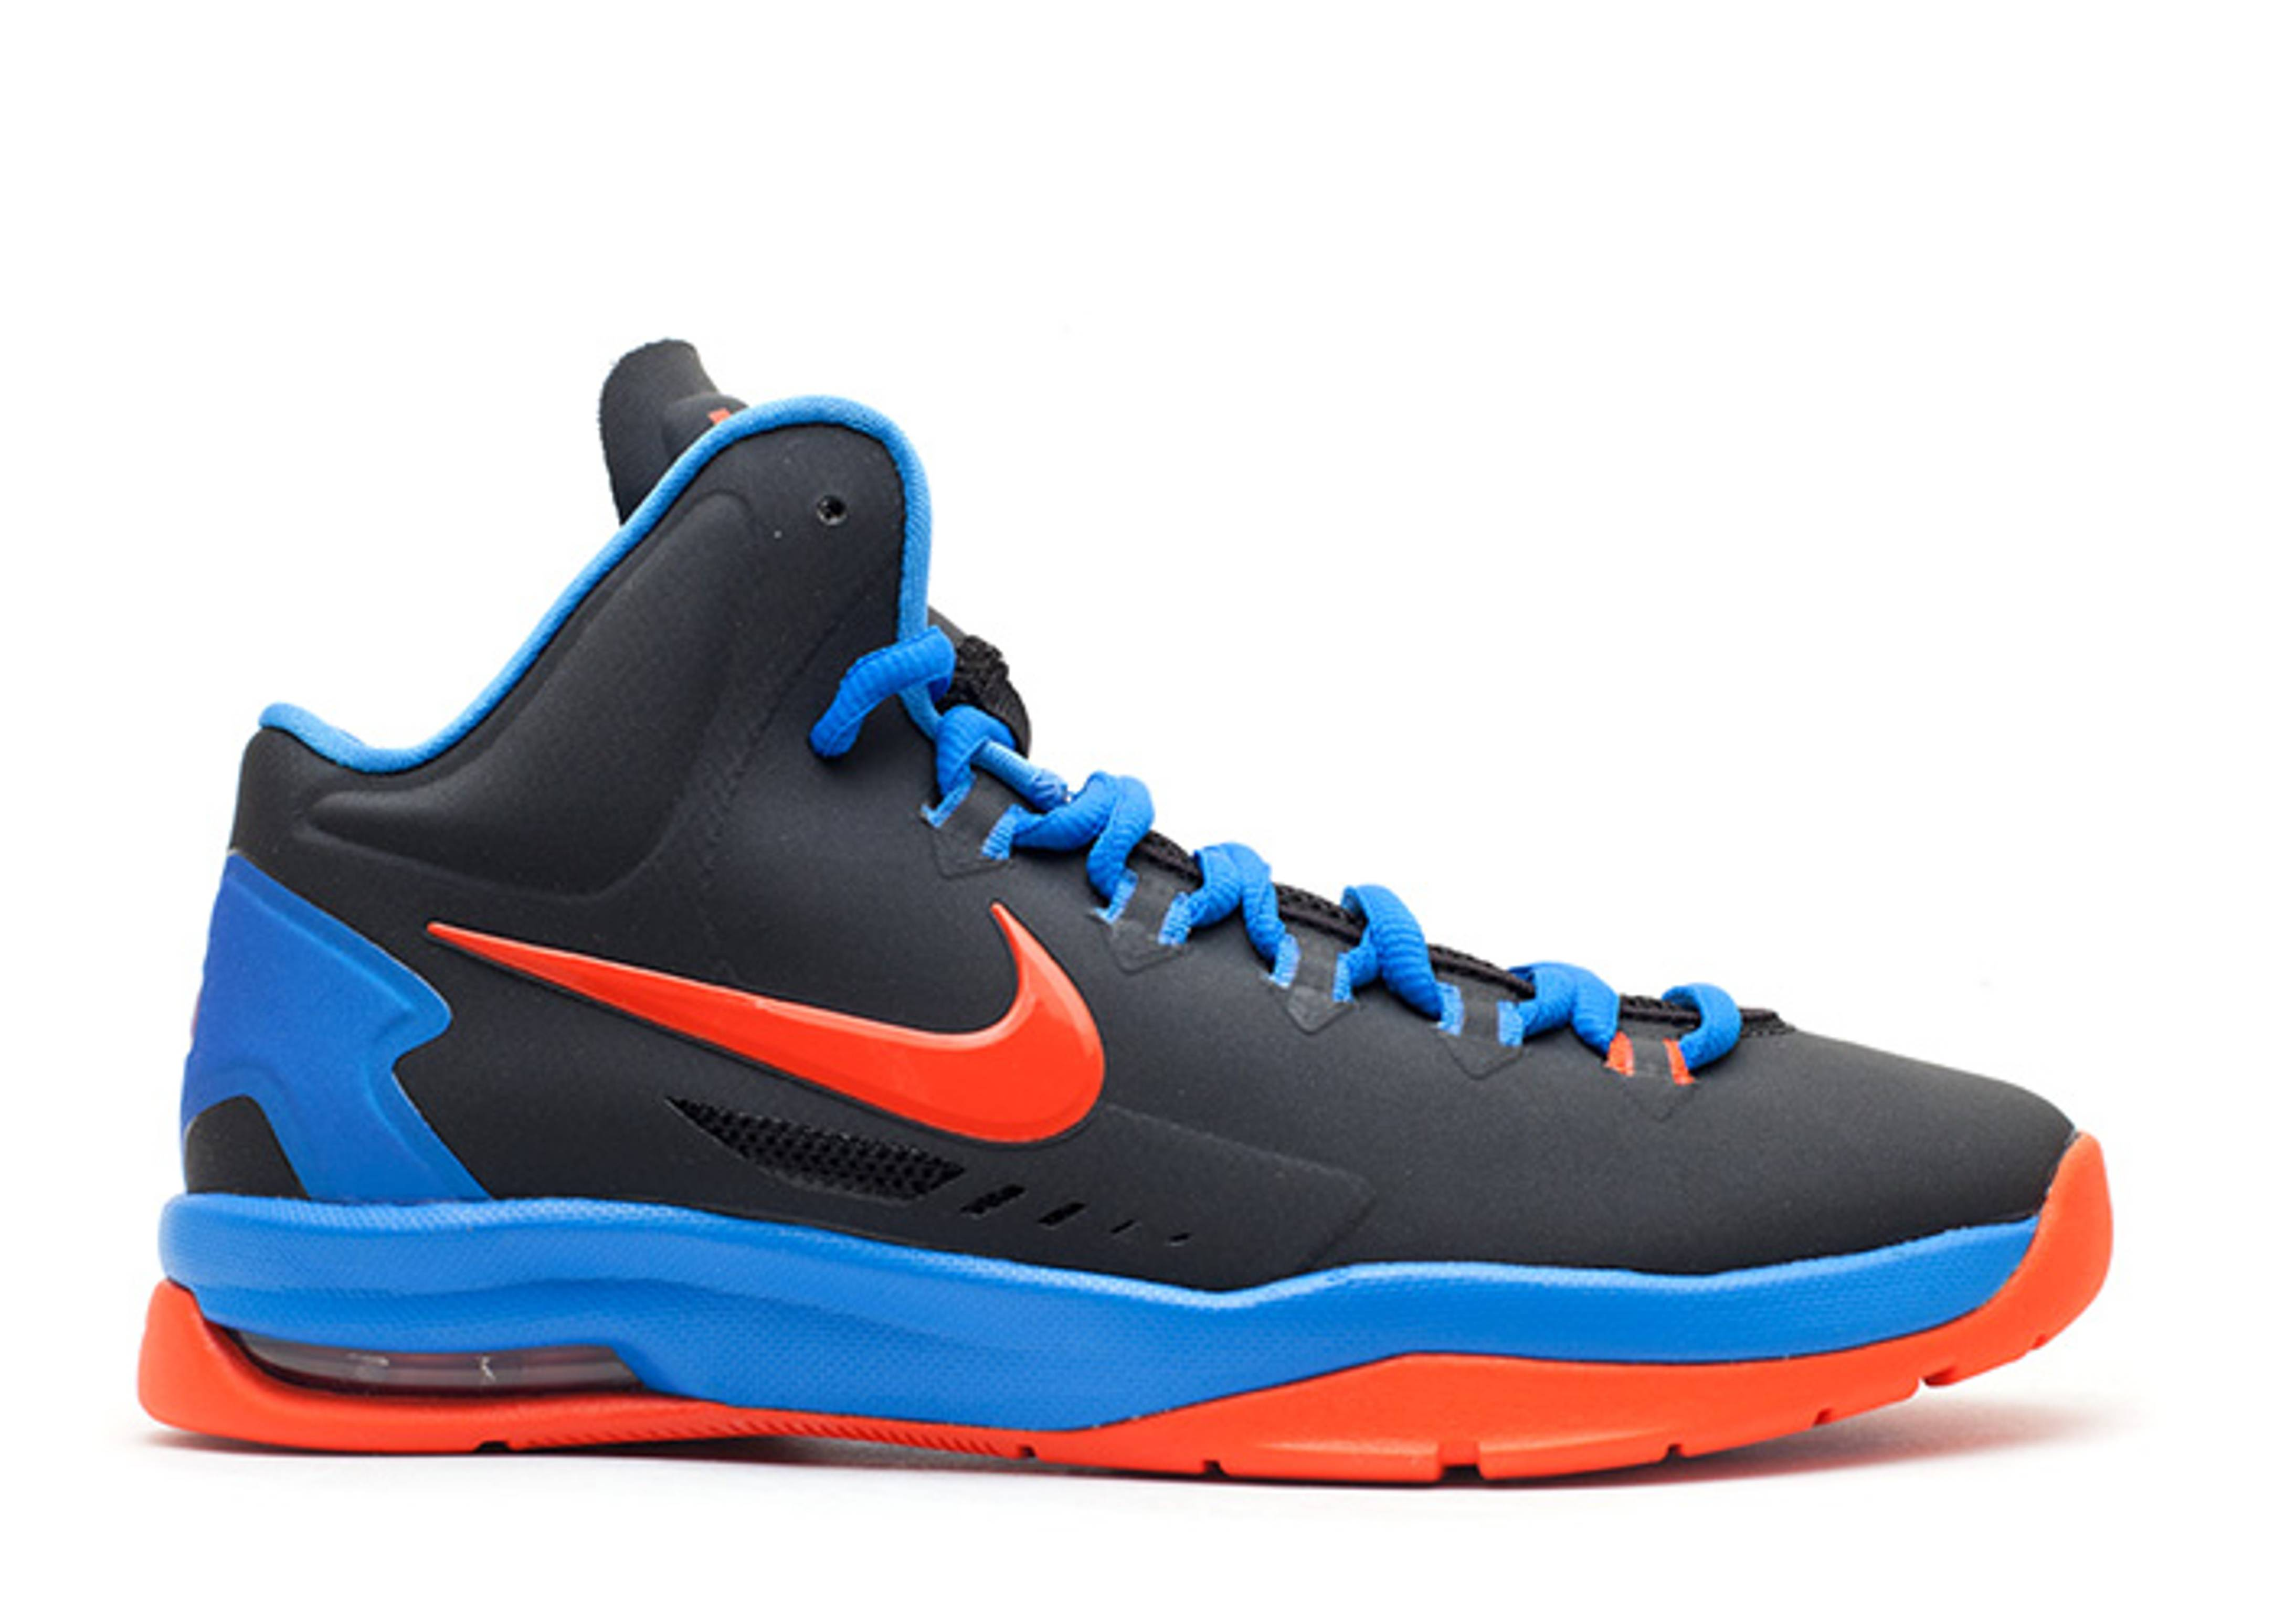 Kd 5 black and blue